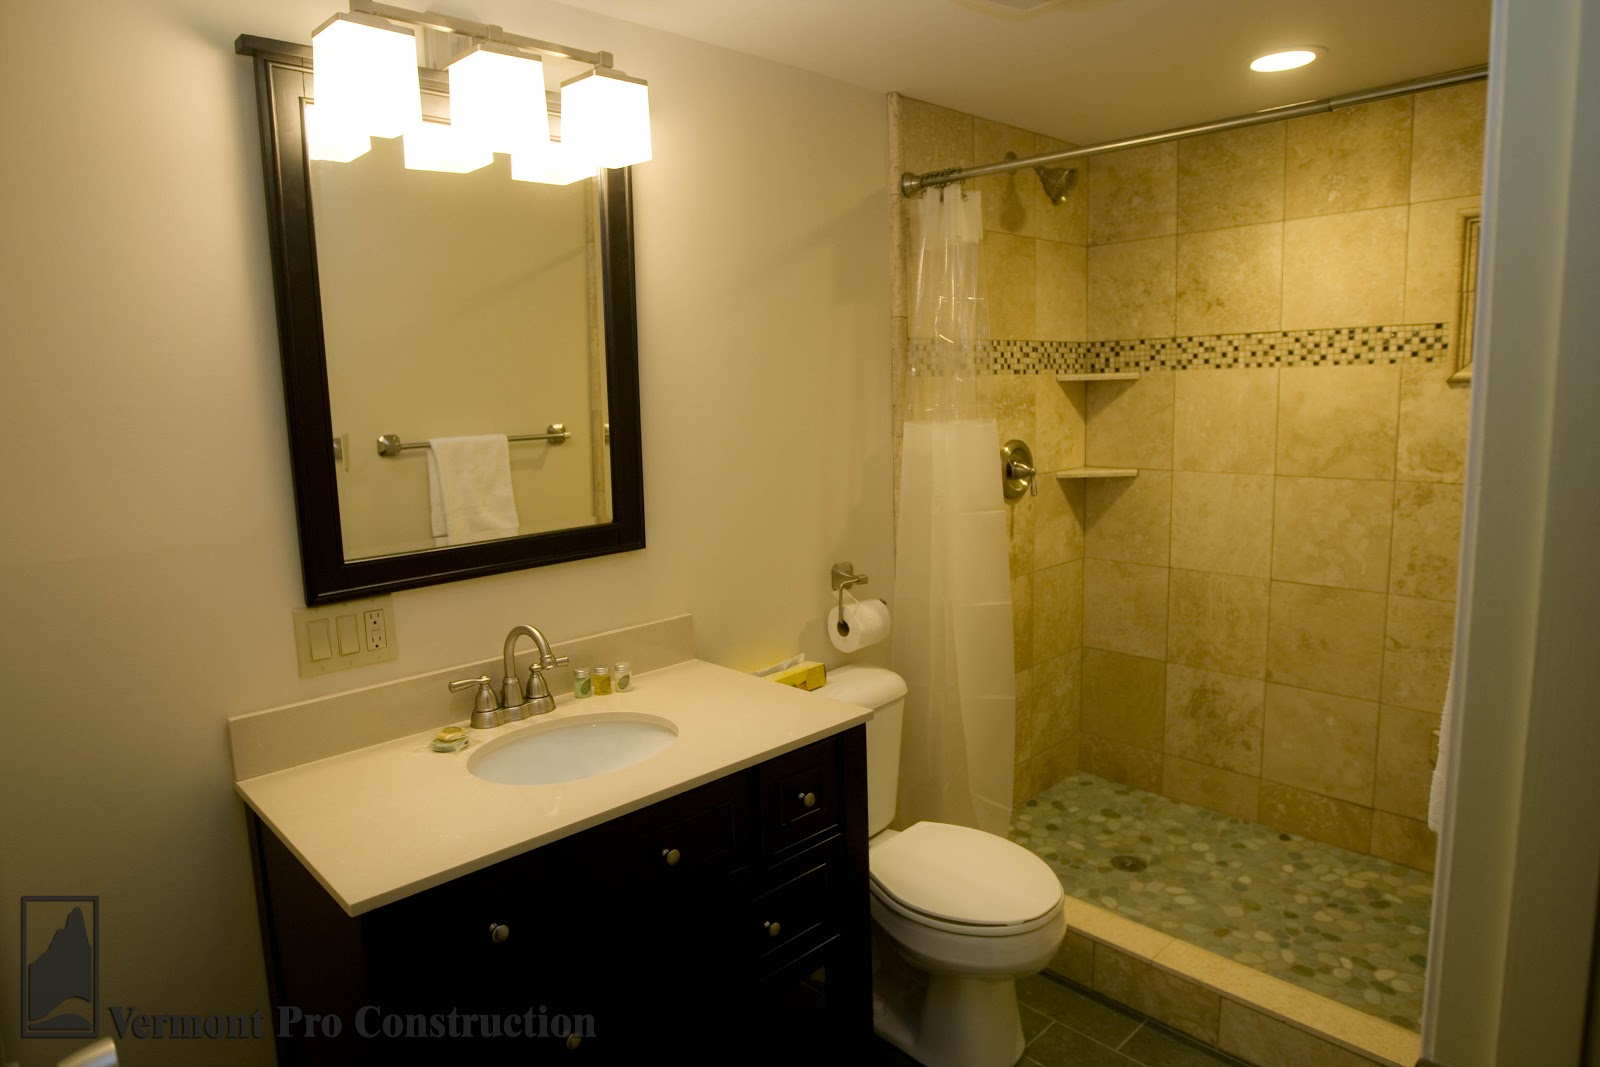 Fancy Renovating Bathroom On A Budget - Acur.lunamedia.co intended for Inspirational Low Cost Bathroom Remodel